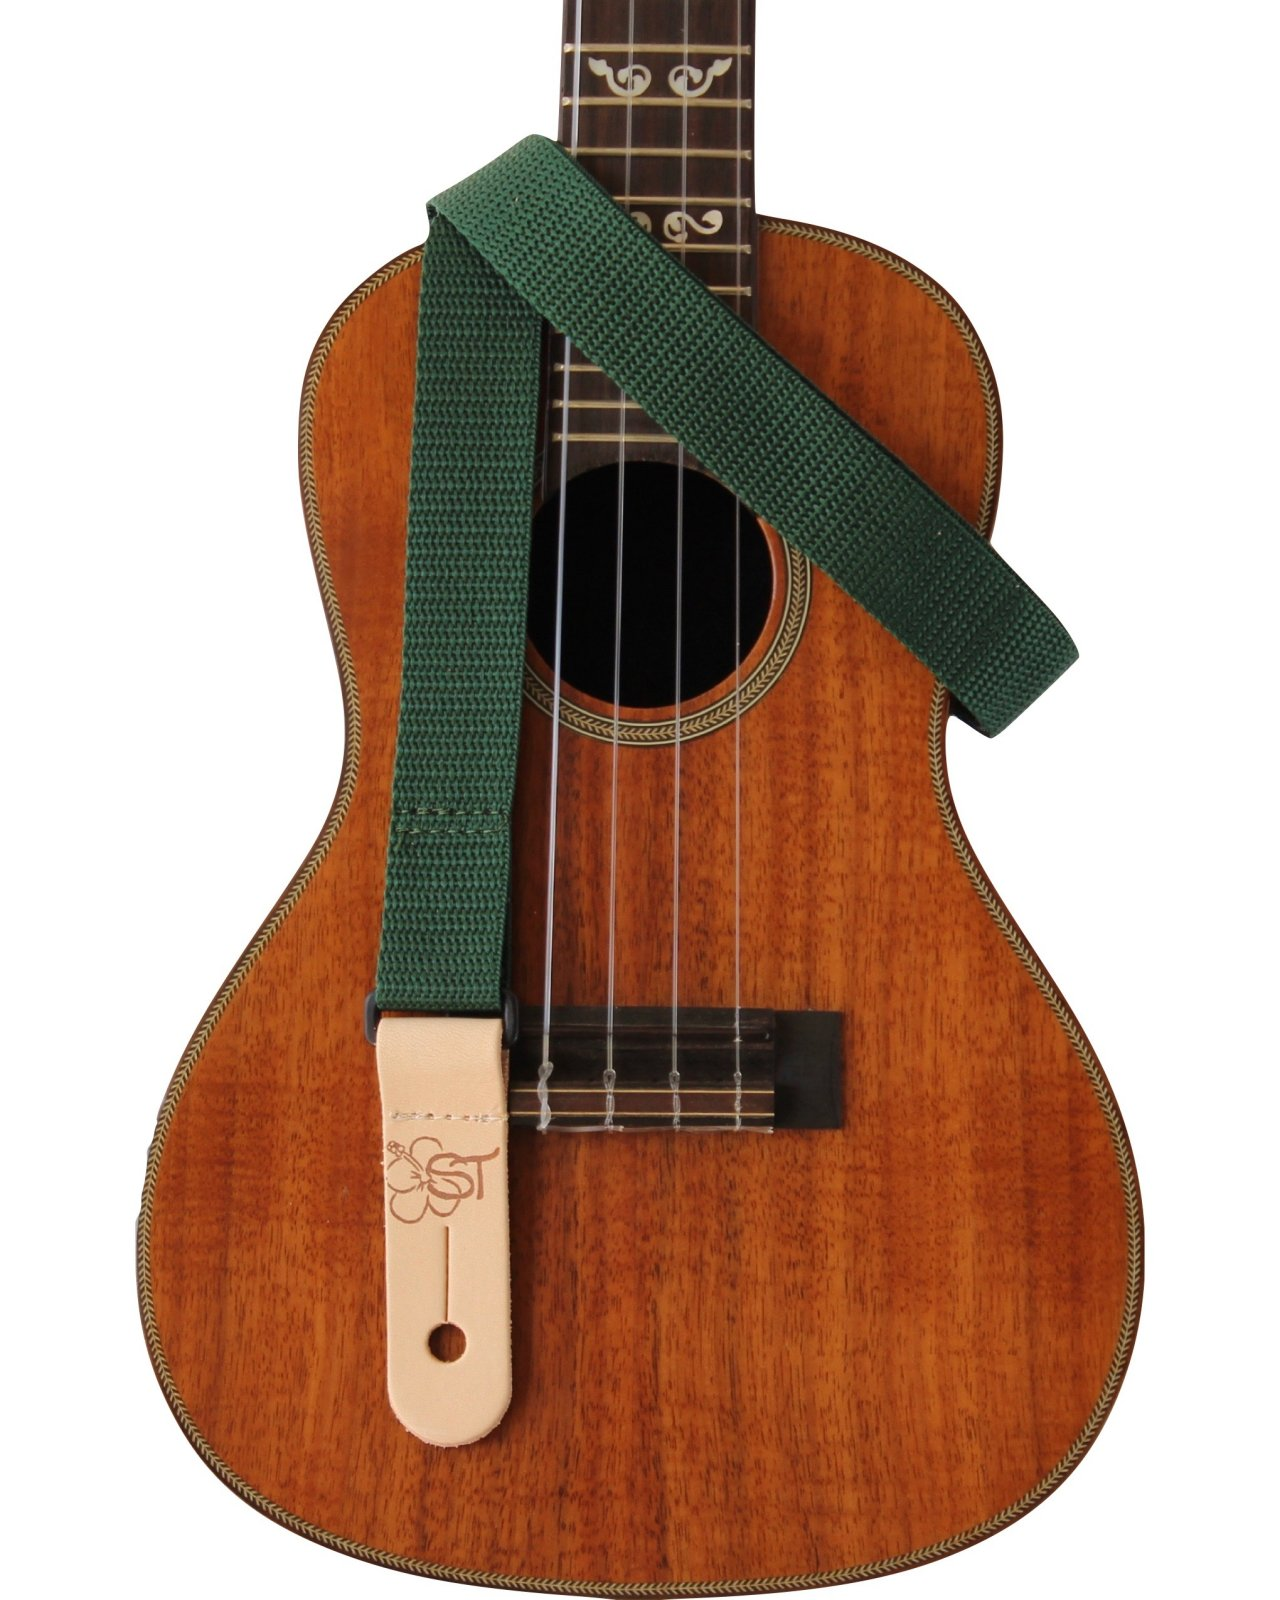 Sherrin's Threads 1 Green Kids Ukulele Strap